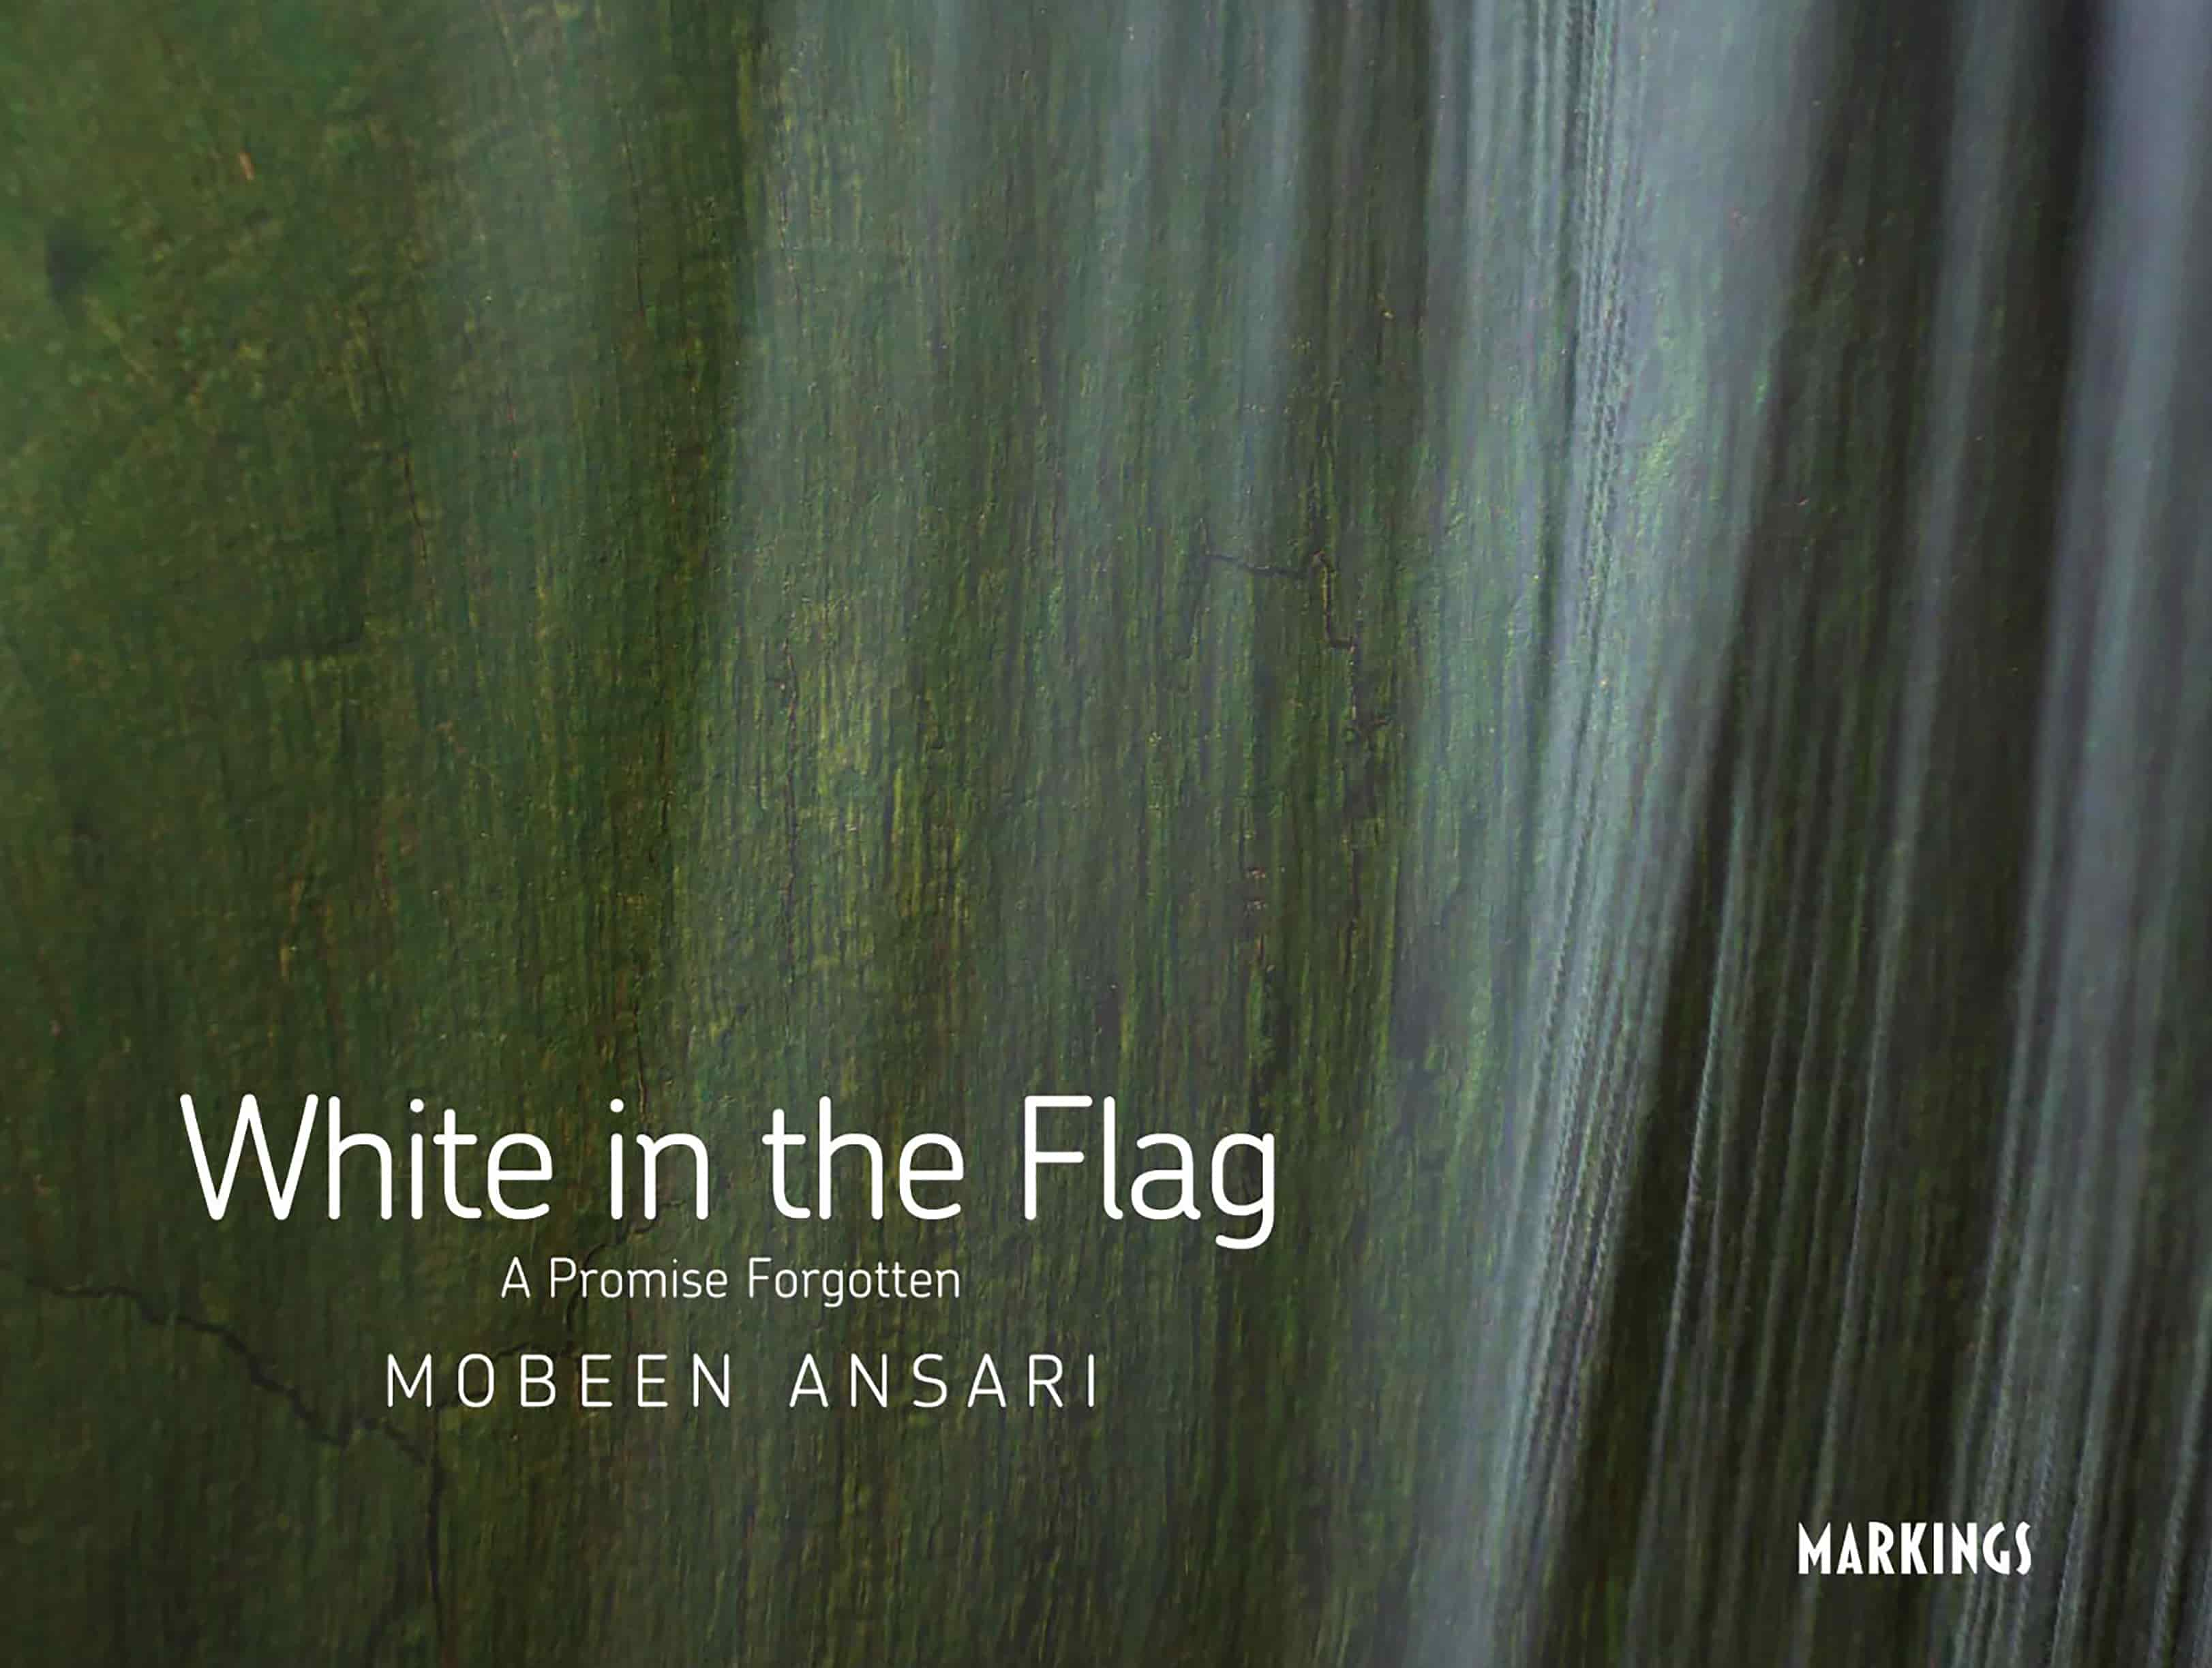 White in the flag